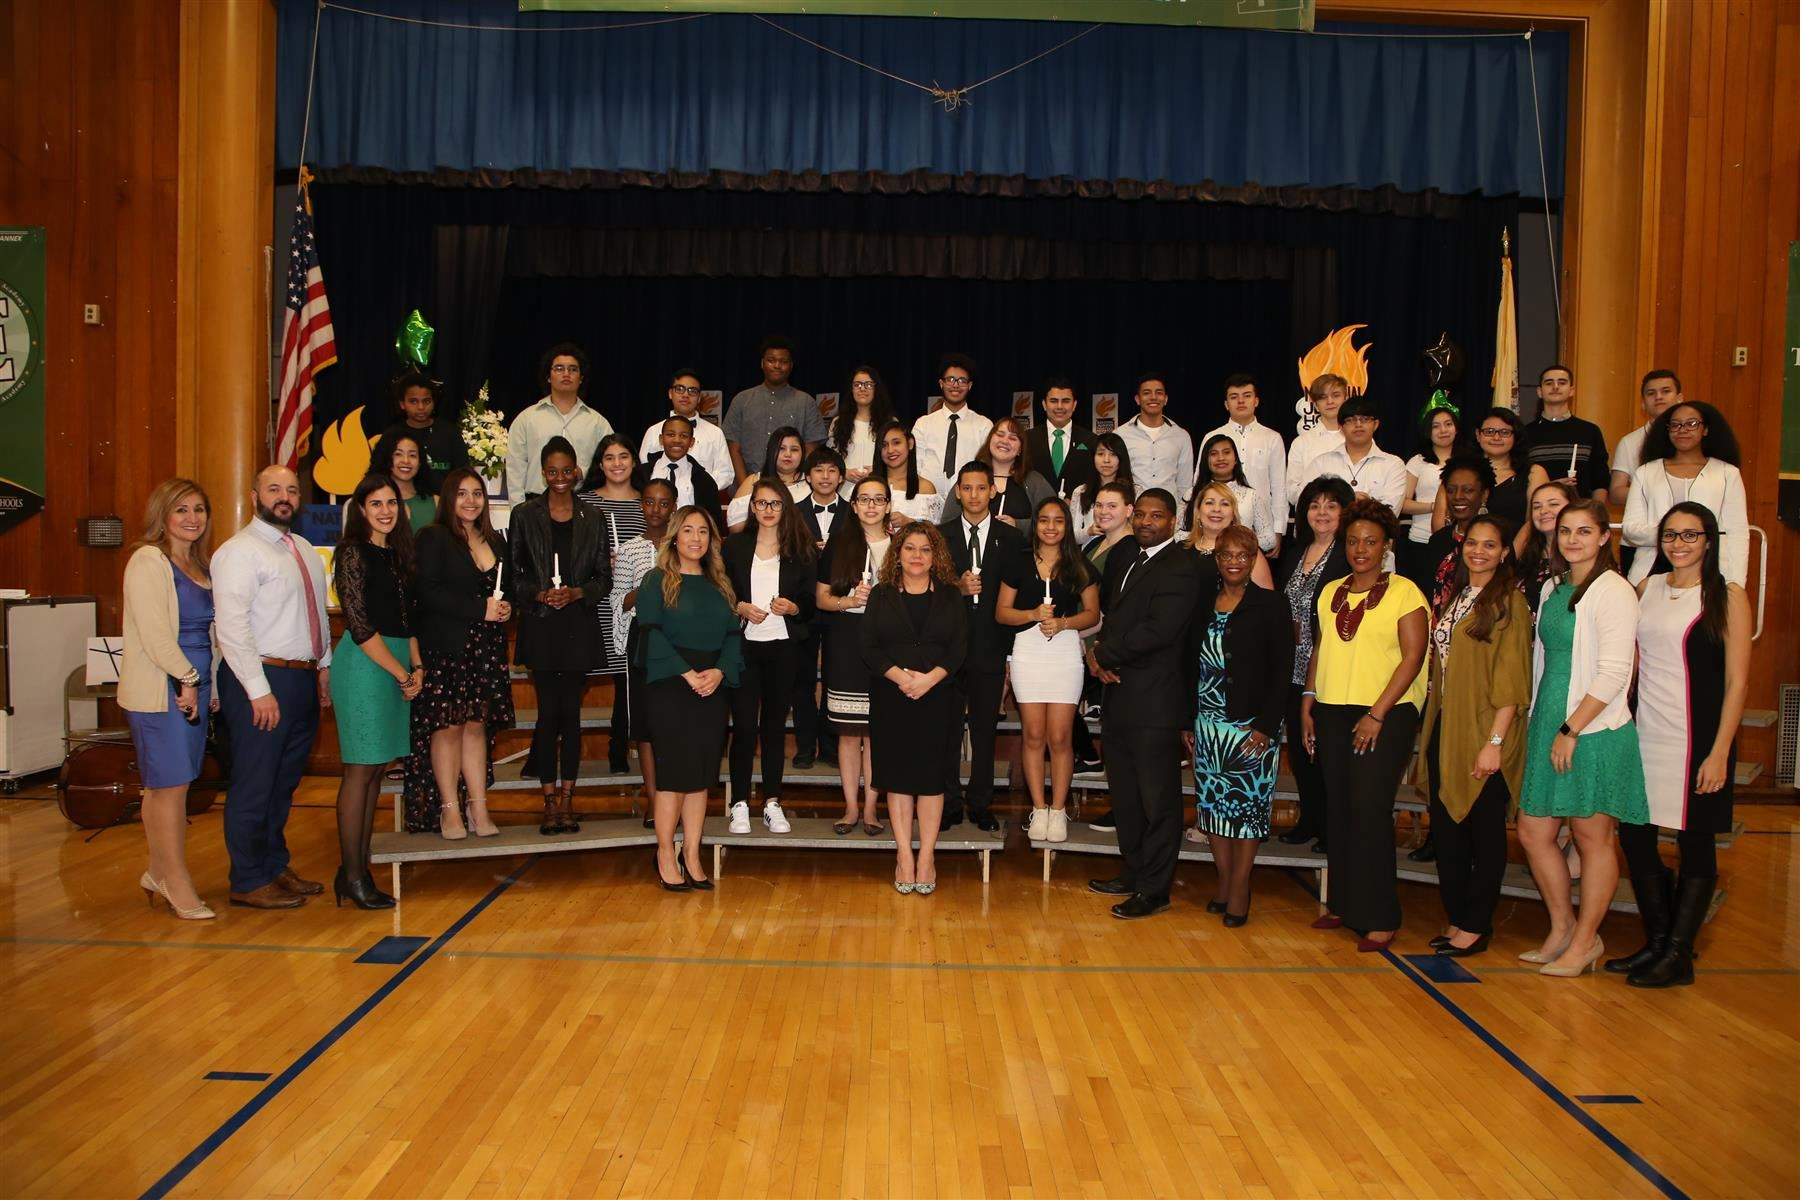 National Junior Honor Society Induction Ceremony @ Dwyer Annex